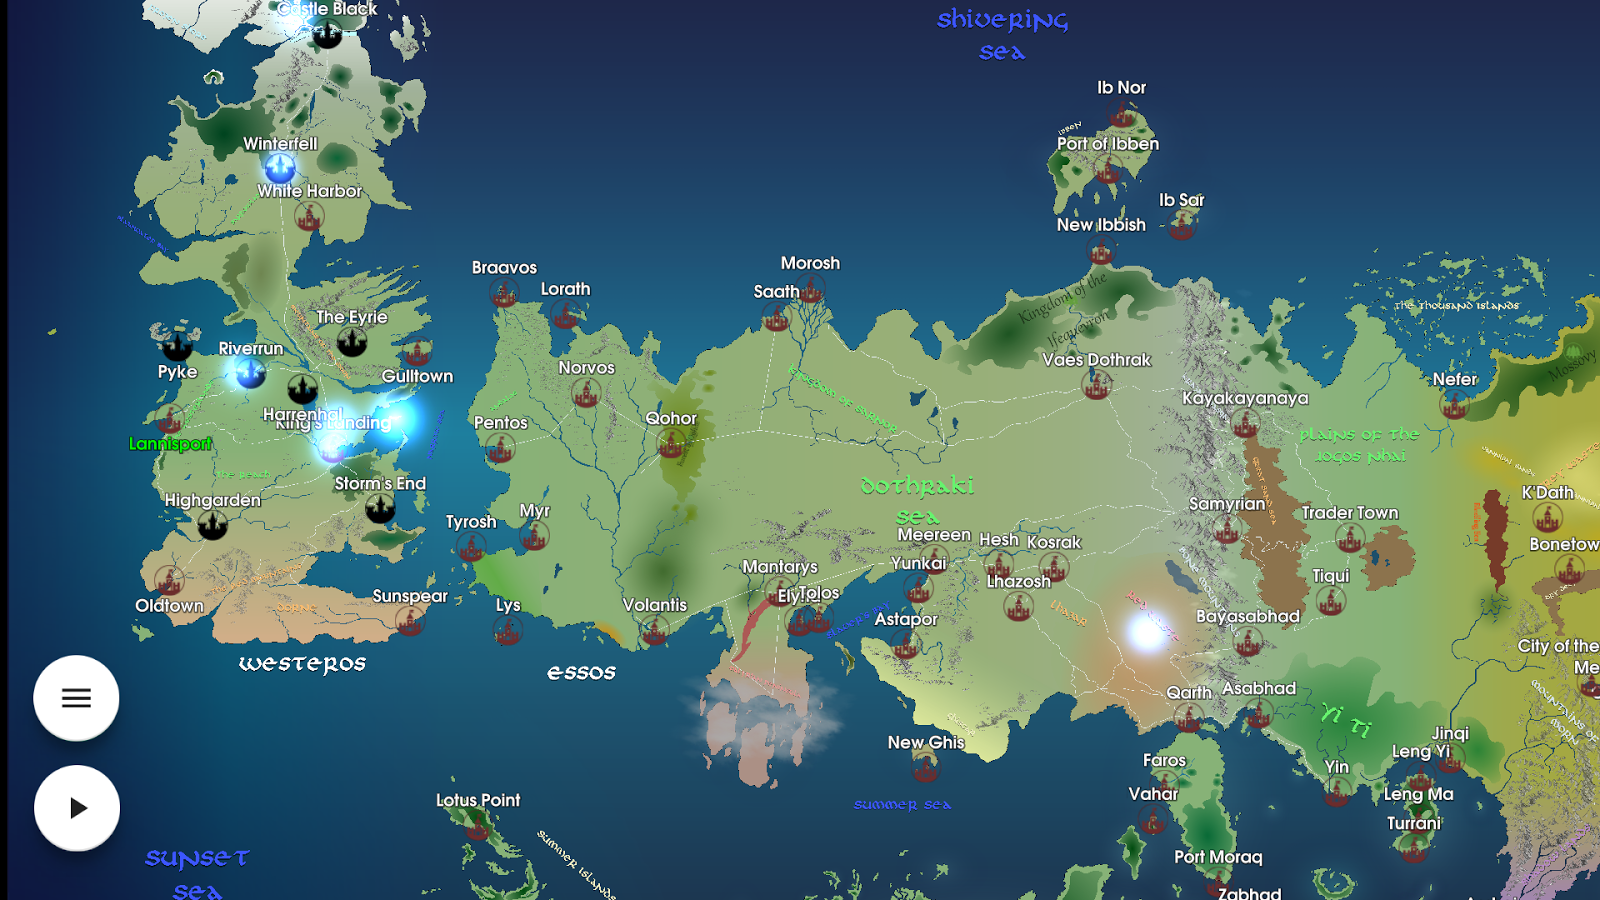 Map for game of thrones free 281 apk download android map for game of thrones free 281 screenshot 1 gumiabroncs Gallery